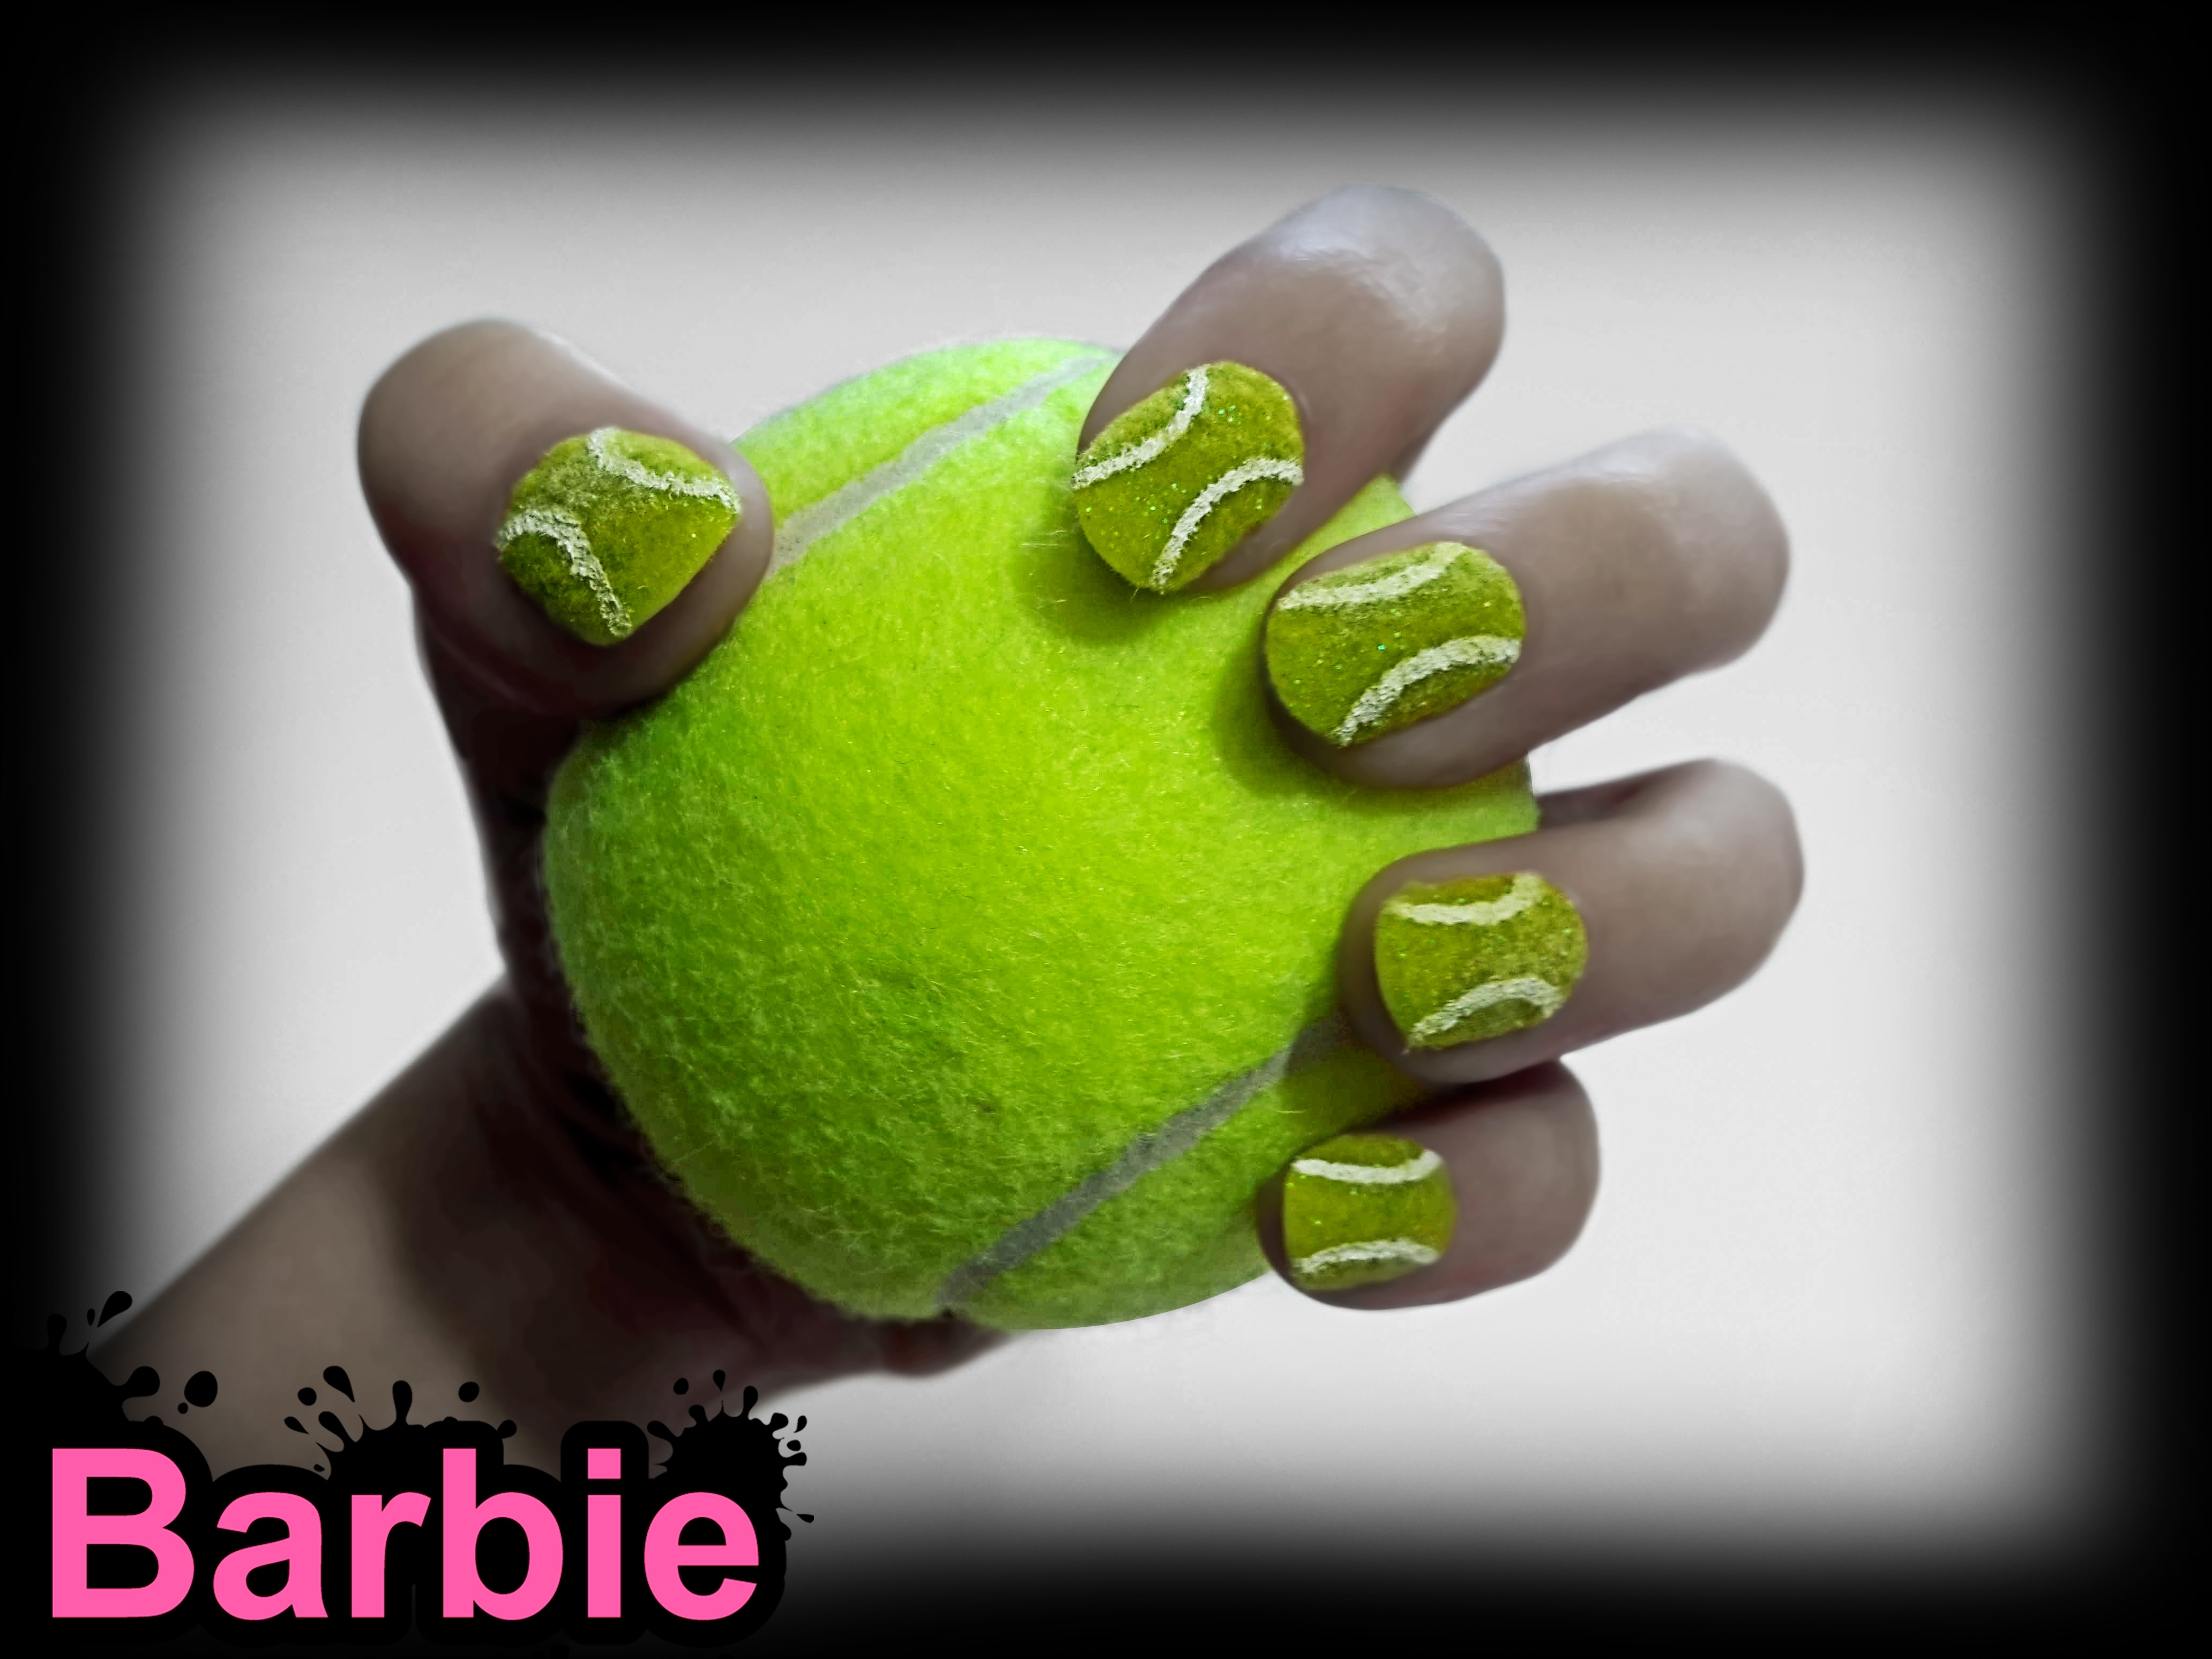 Tennis ball nails by barbienailart on deviantart tennis ball nails by barbienailart tennis ball nails by barbienailart prinsesfo Choice Image